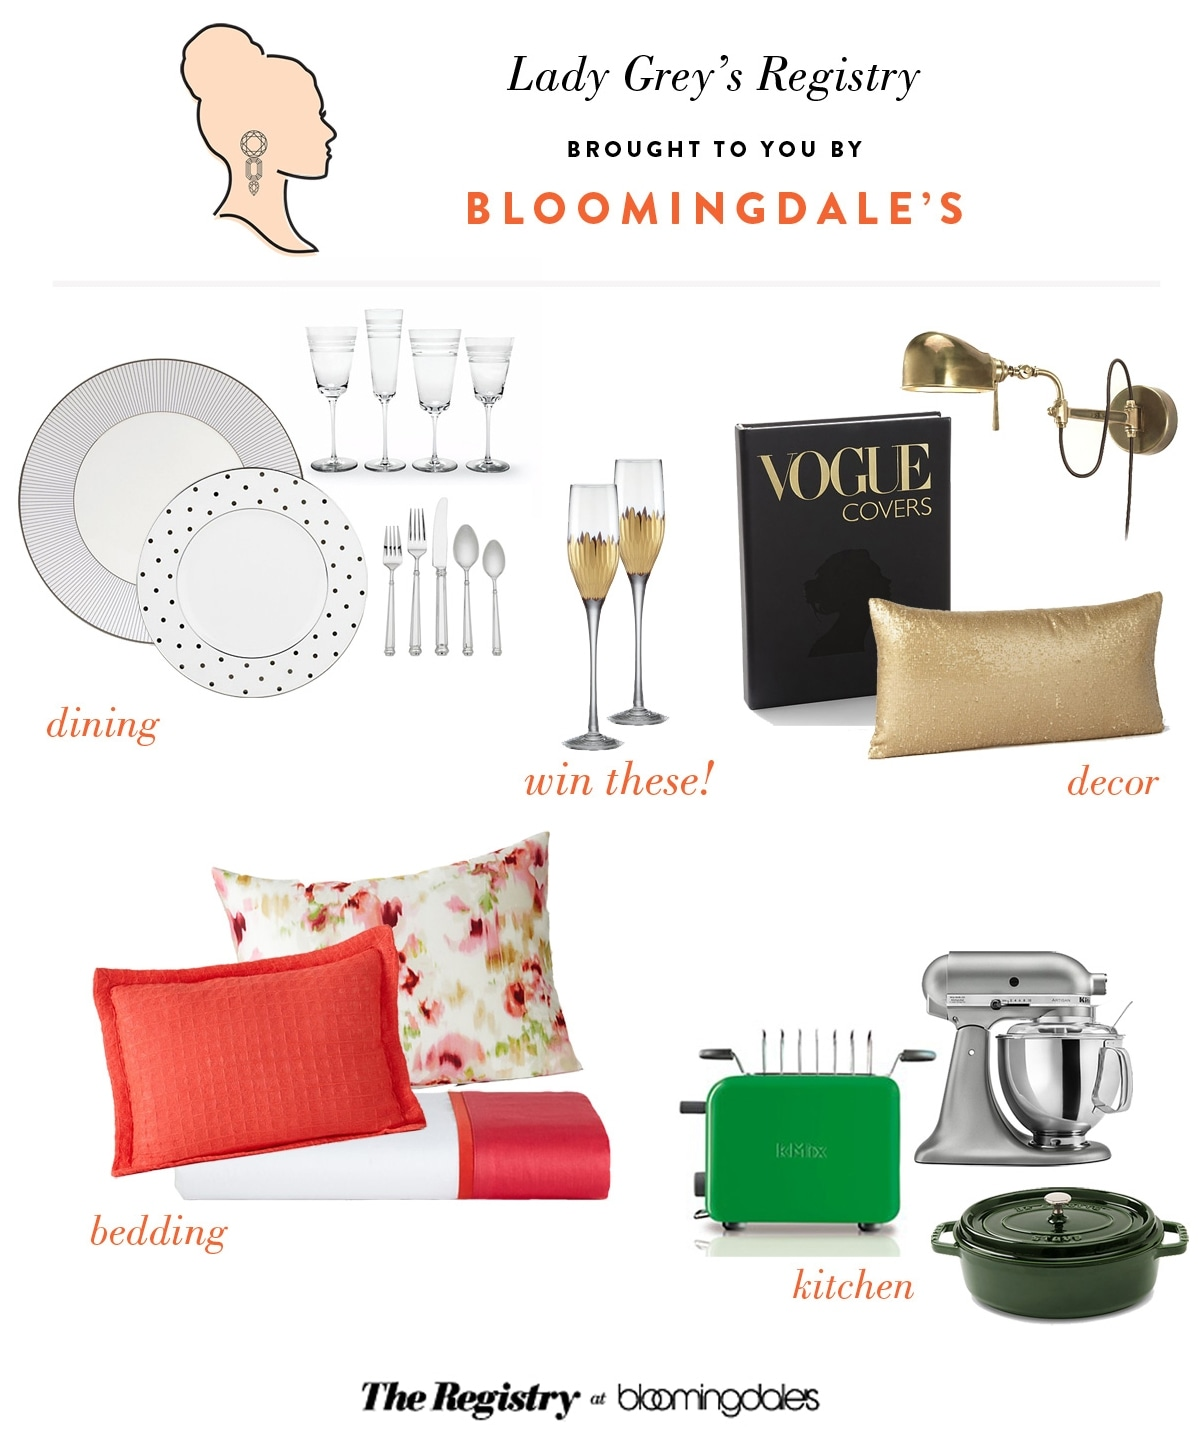 Article Banner: Insider's Guide to Finding Discounts and Deals at Bloomingdale's